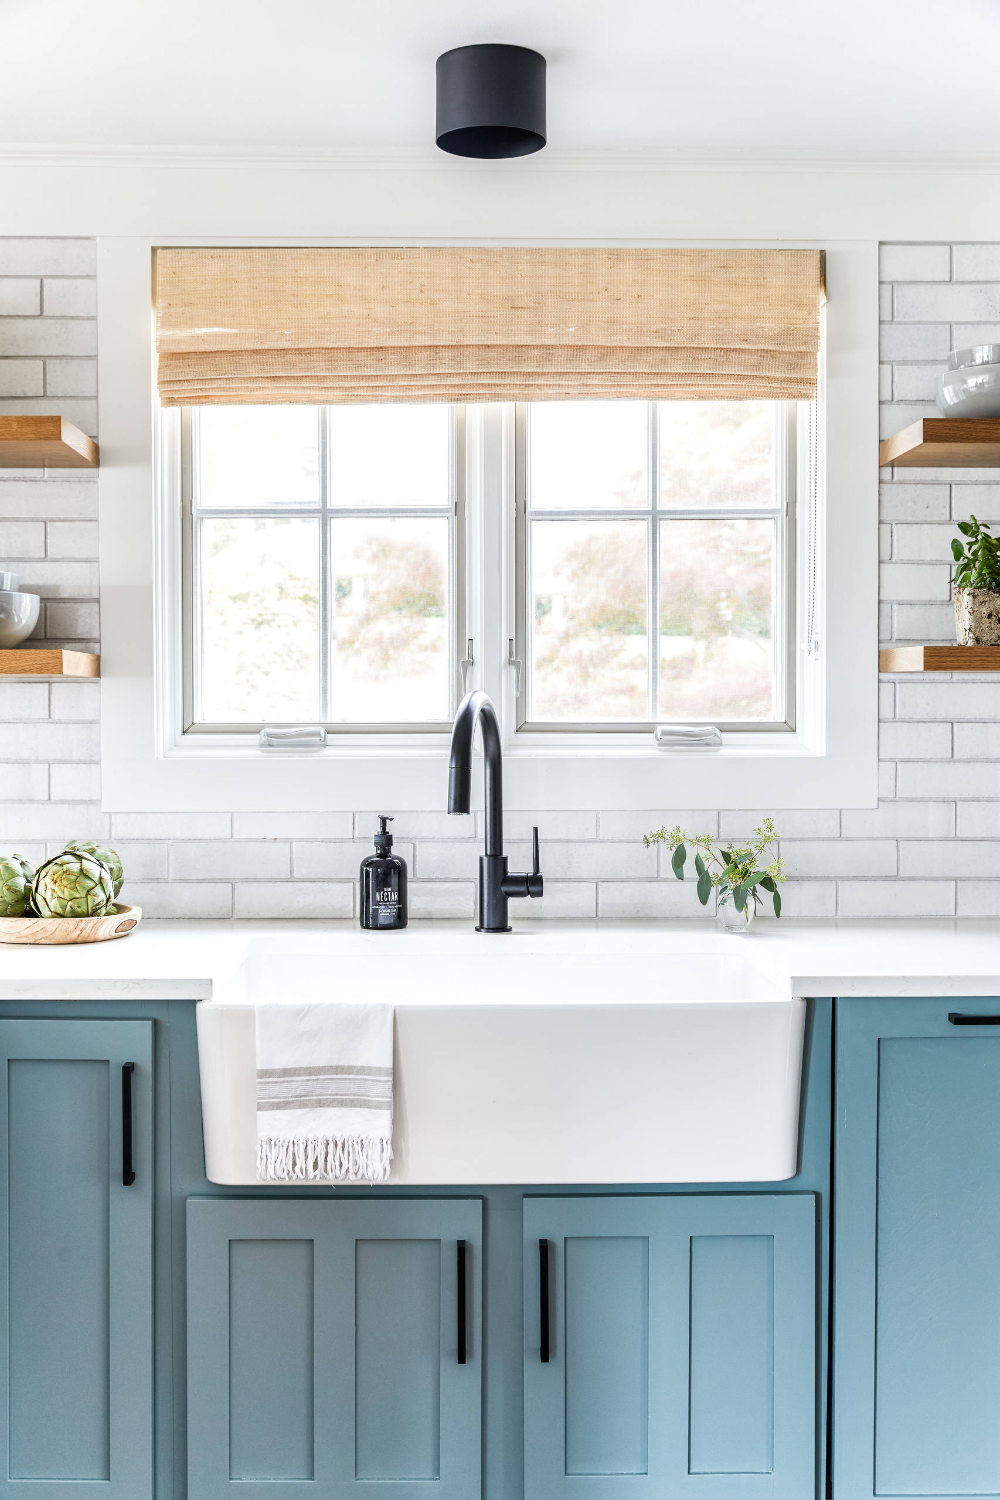 Maine Mainstays White Brick Kitchen Backsplash Farmhouse Kitchen Portland Maine In 2020 White Farmhouse Sink Black Kitchen Faucets Matte Black Kitchen Faucet